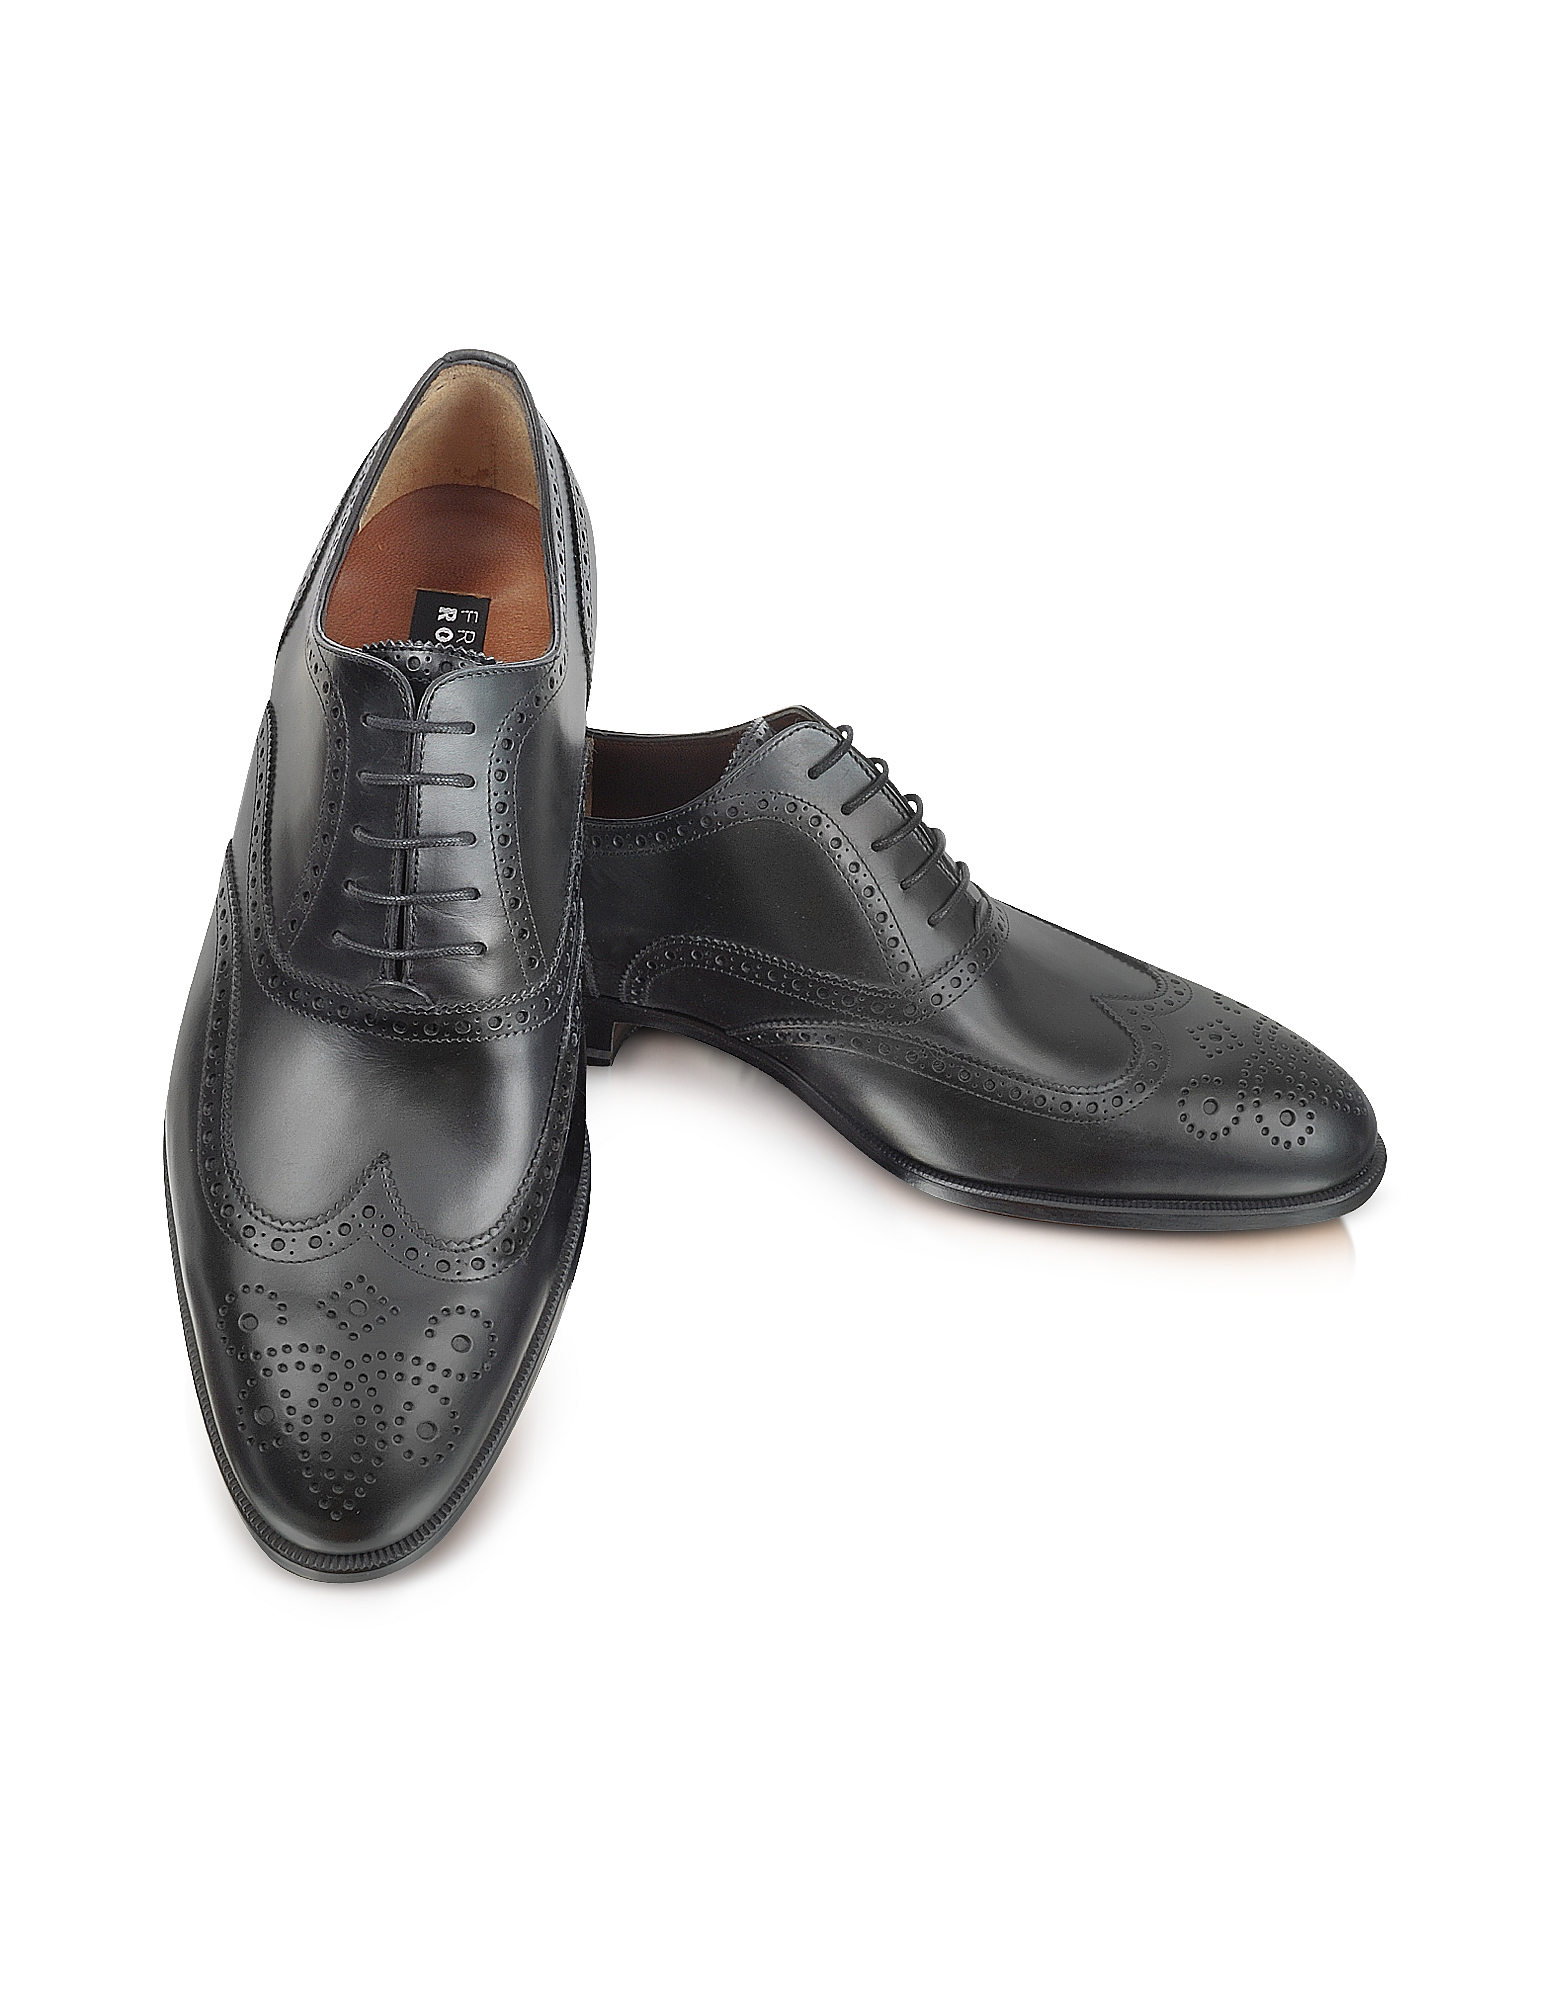 Image of Fratelli Rossetti Designer Shoes, Anilcalf - Black Leather Oxford